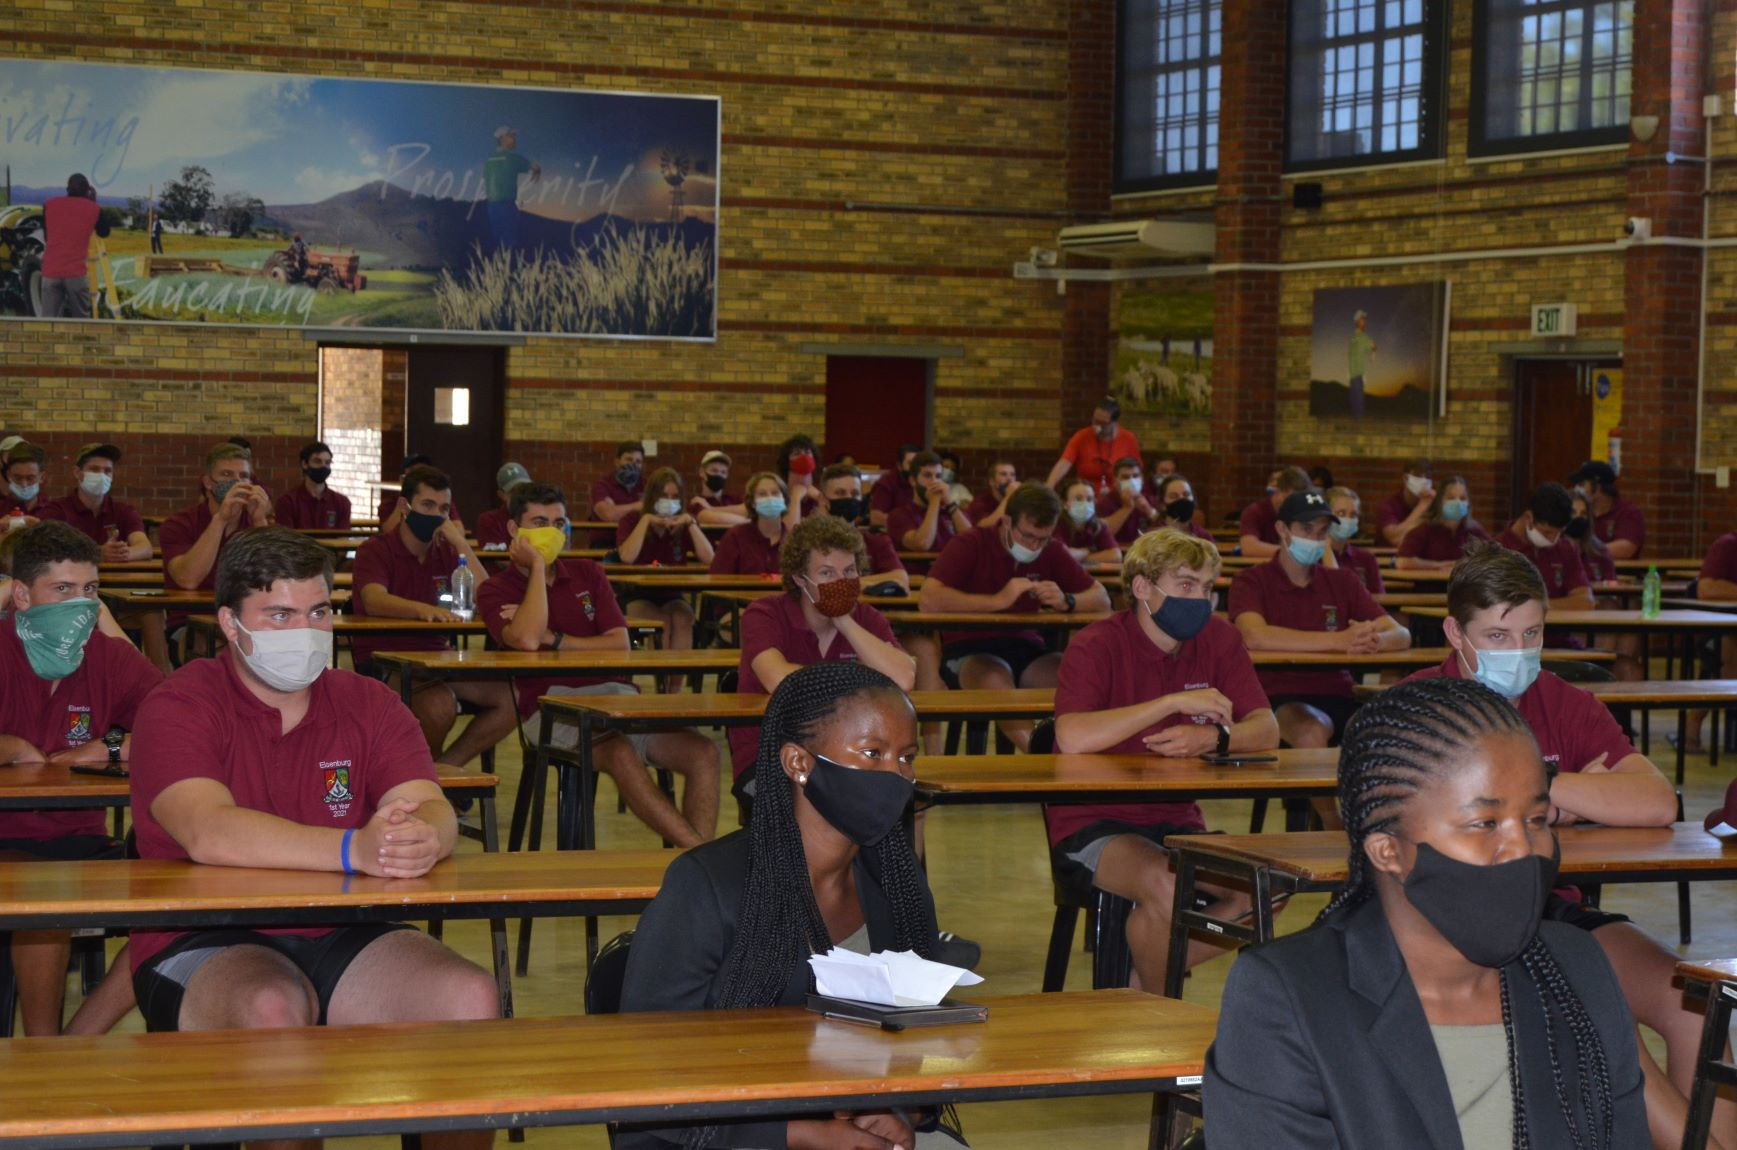 ELSENBURG AGRICULTURAL TRAINING INSTITUTE WELCOMES FIRST YEAR STUDENTS